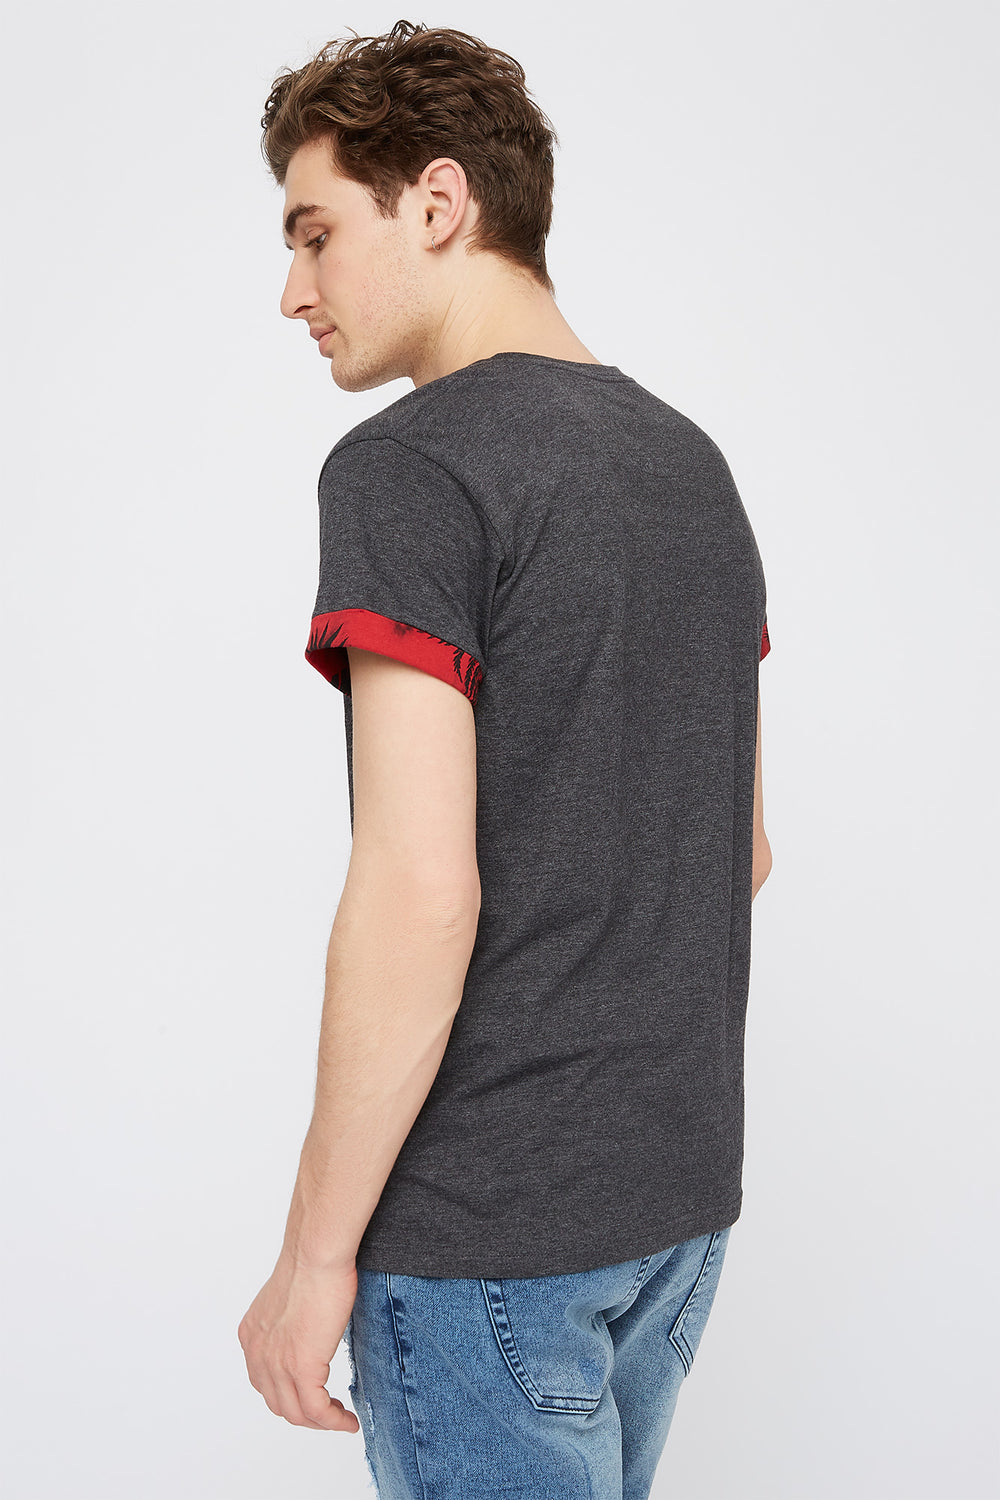 Contrast Pocket Cuffed Sleeve T-Shirt Charcoal